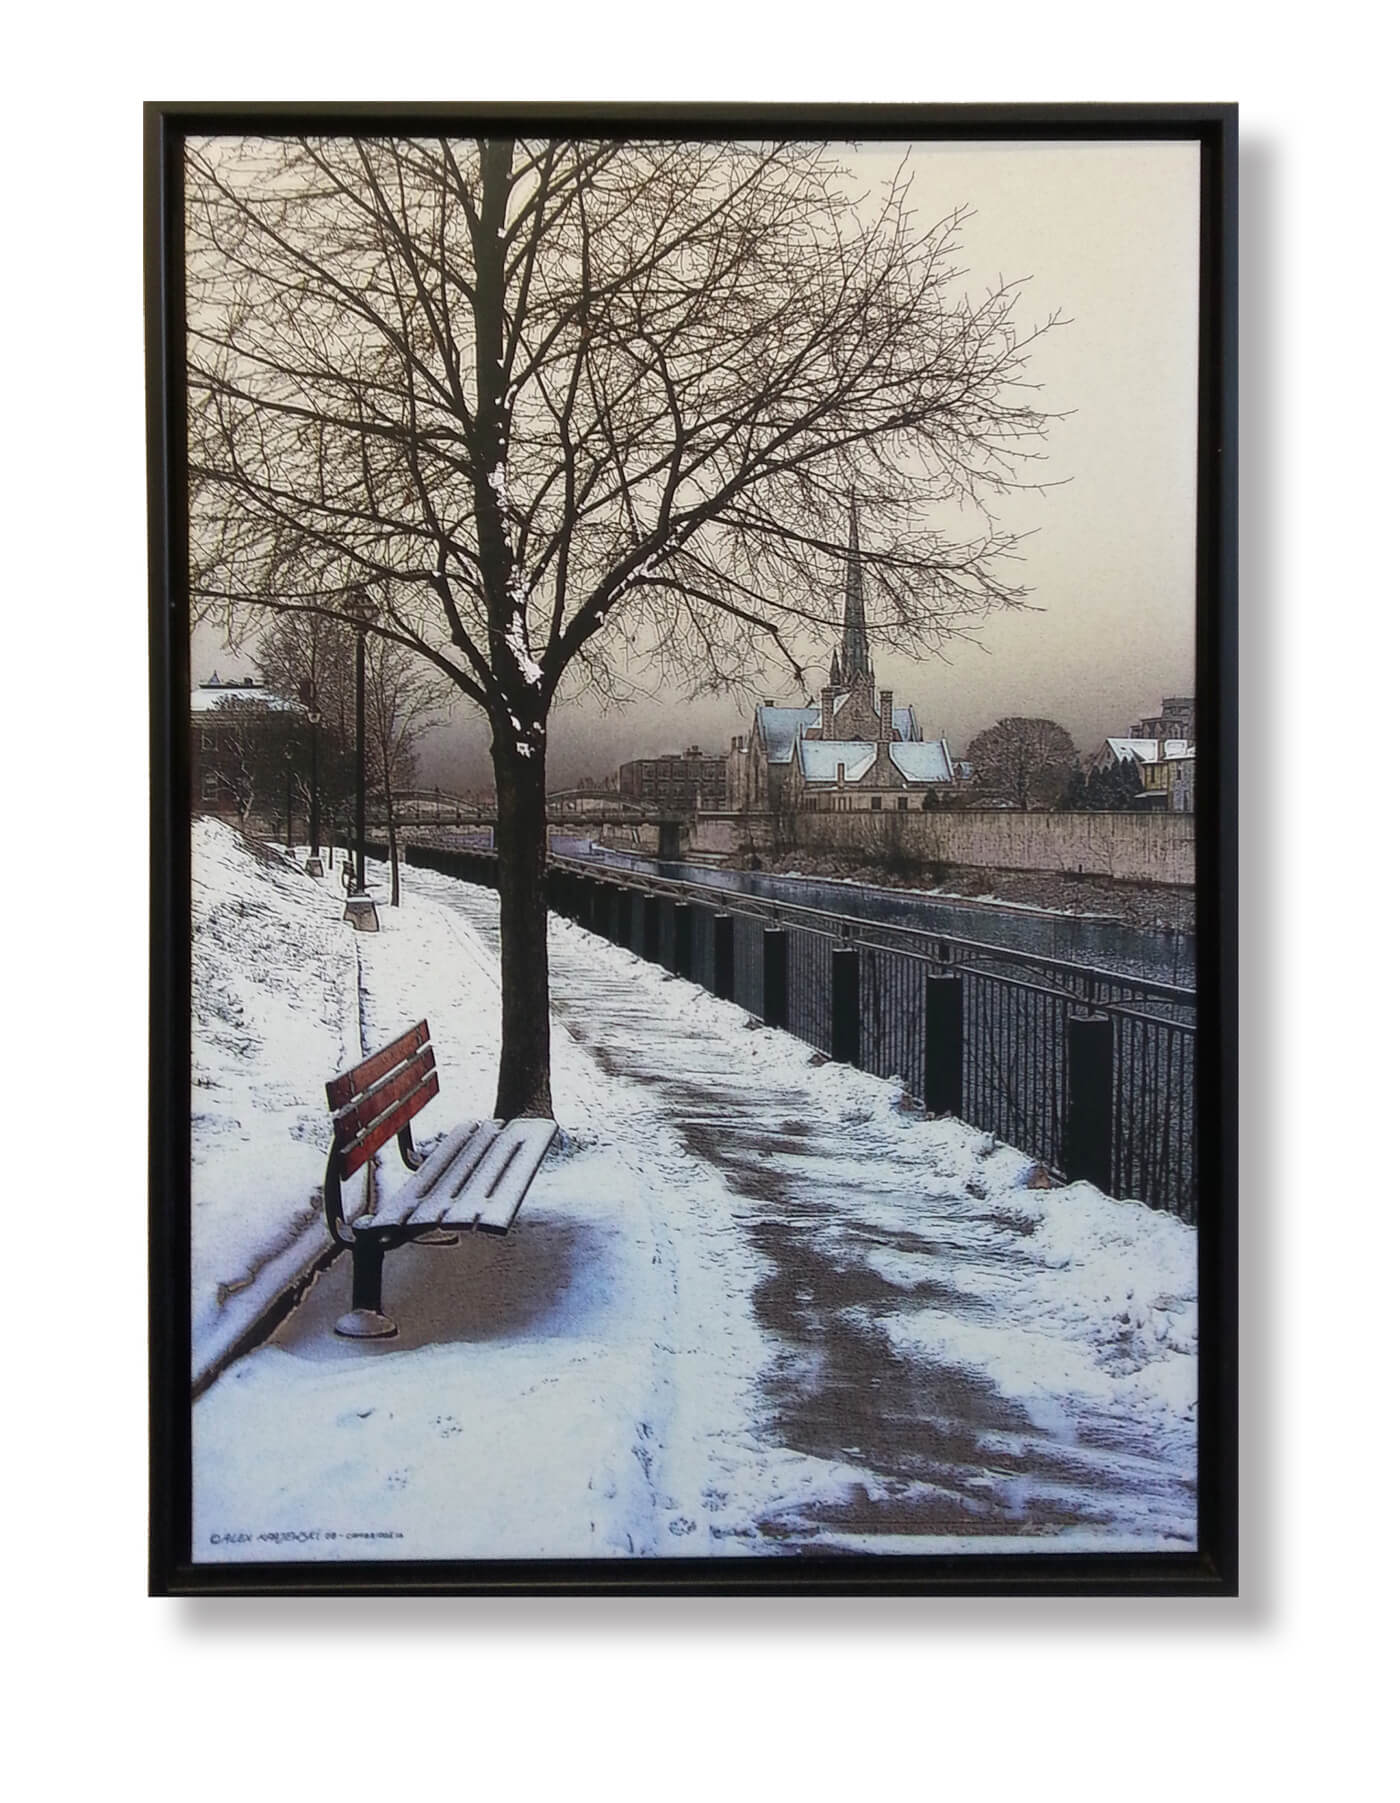 Winter Bench photograph on canvas by Cambridge ON artist Alex Krajewski framed in black floater frame